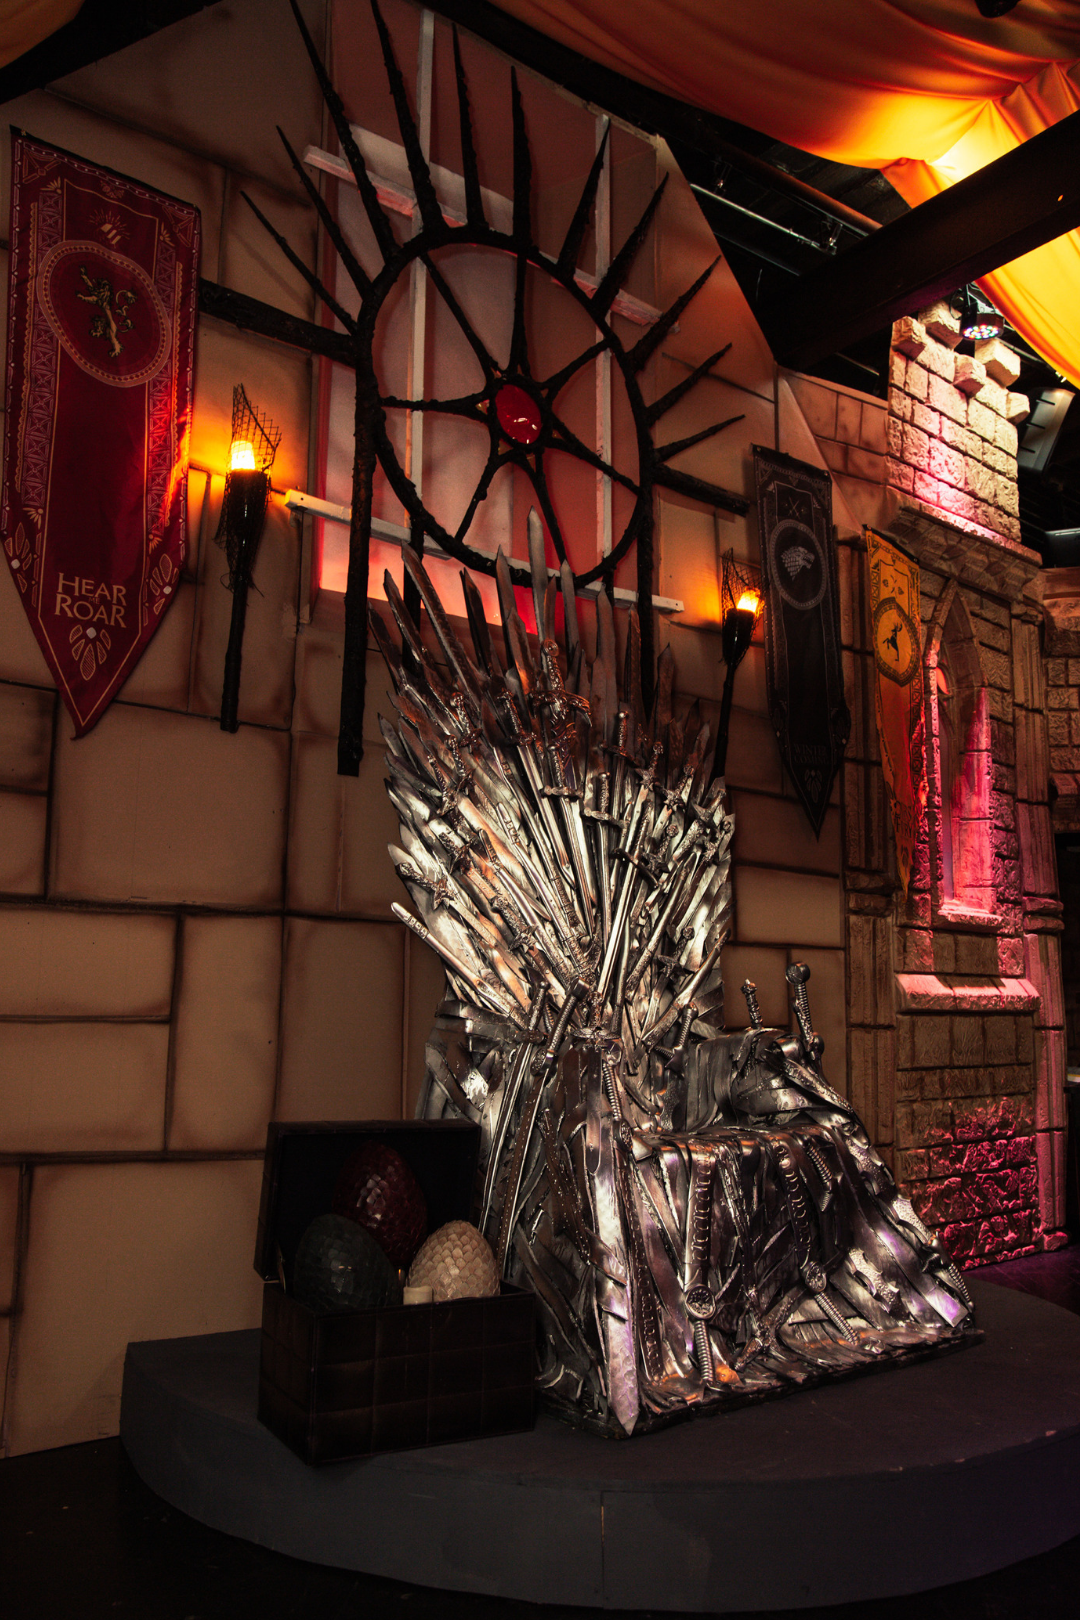 The Ultimate 3-Level Game of Thrones Pop-Up Is Open